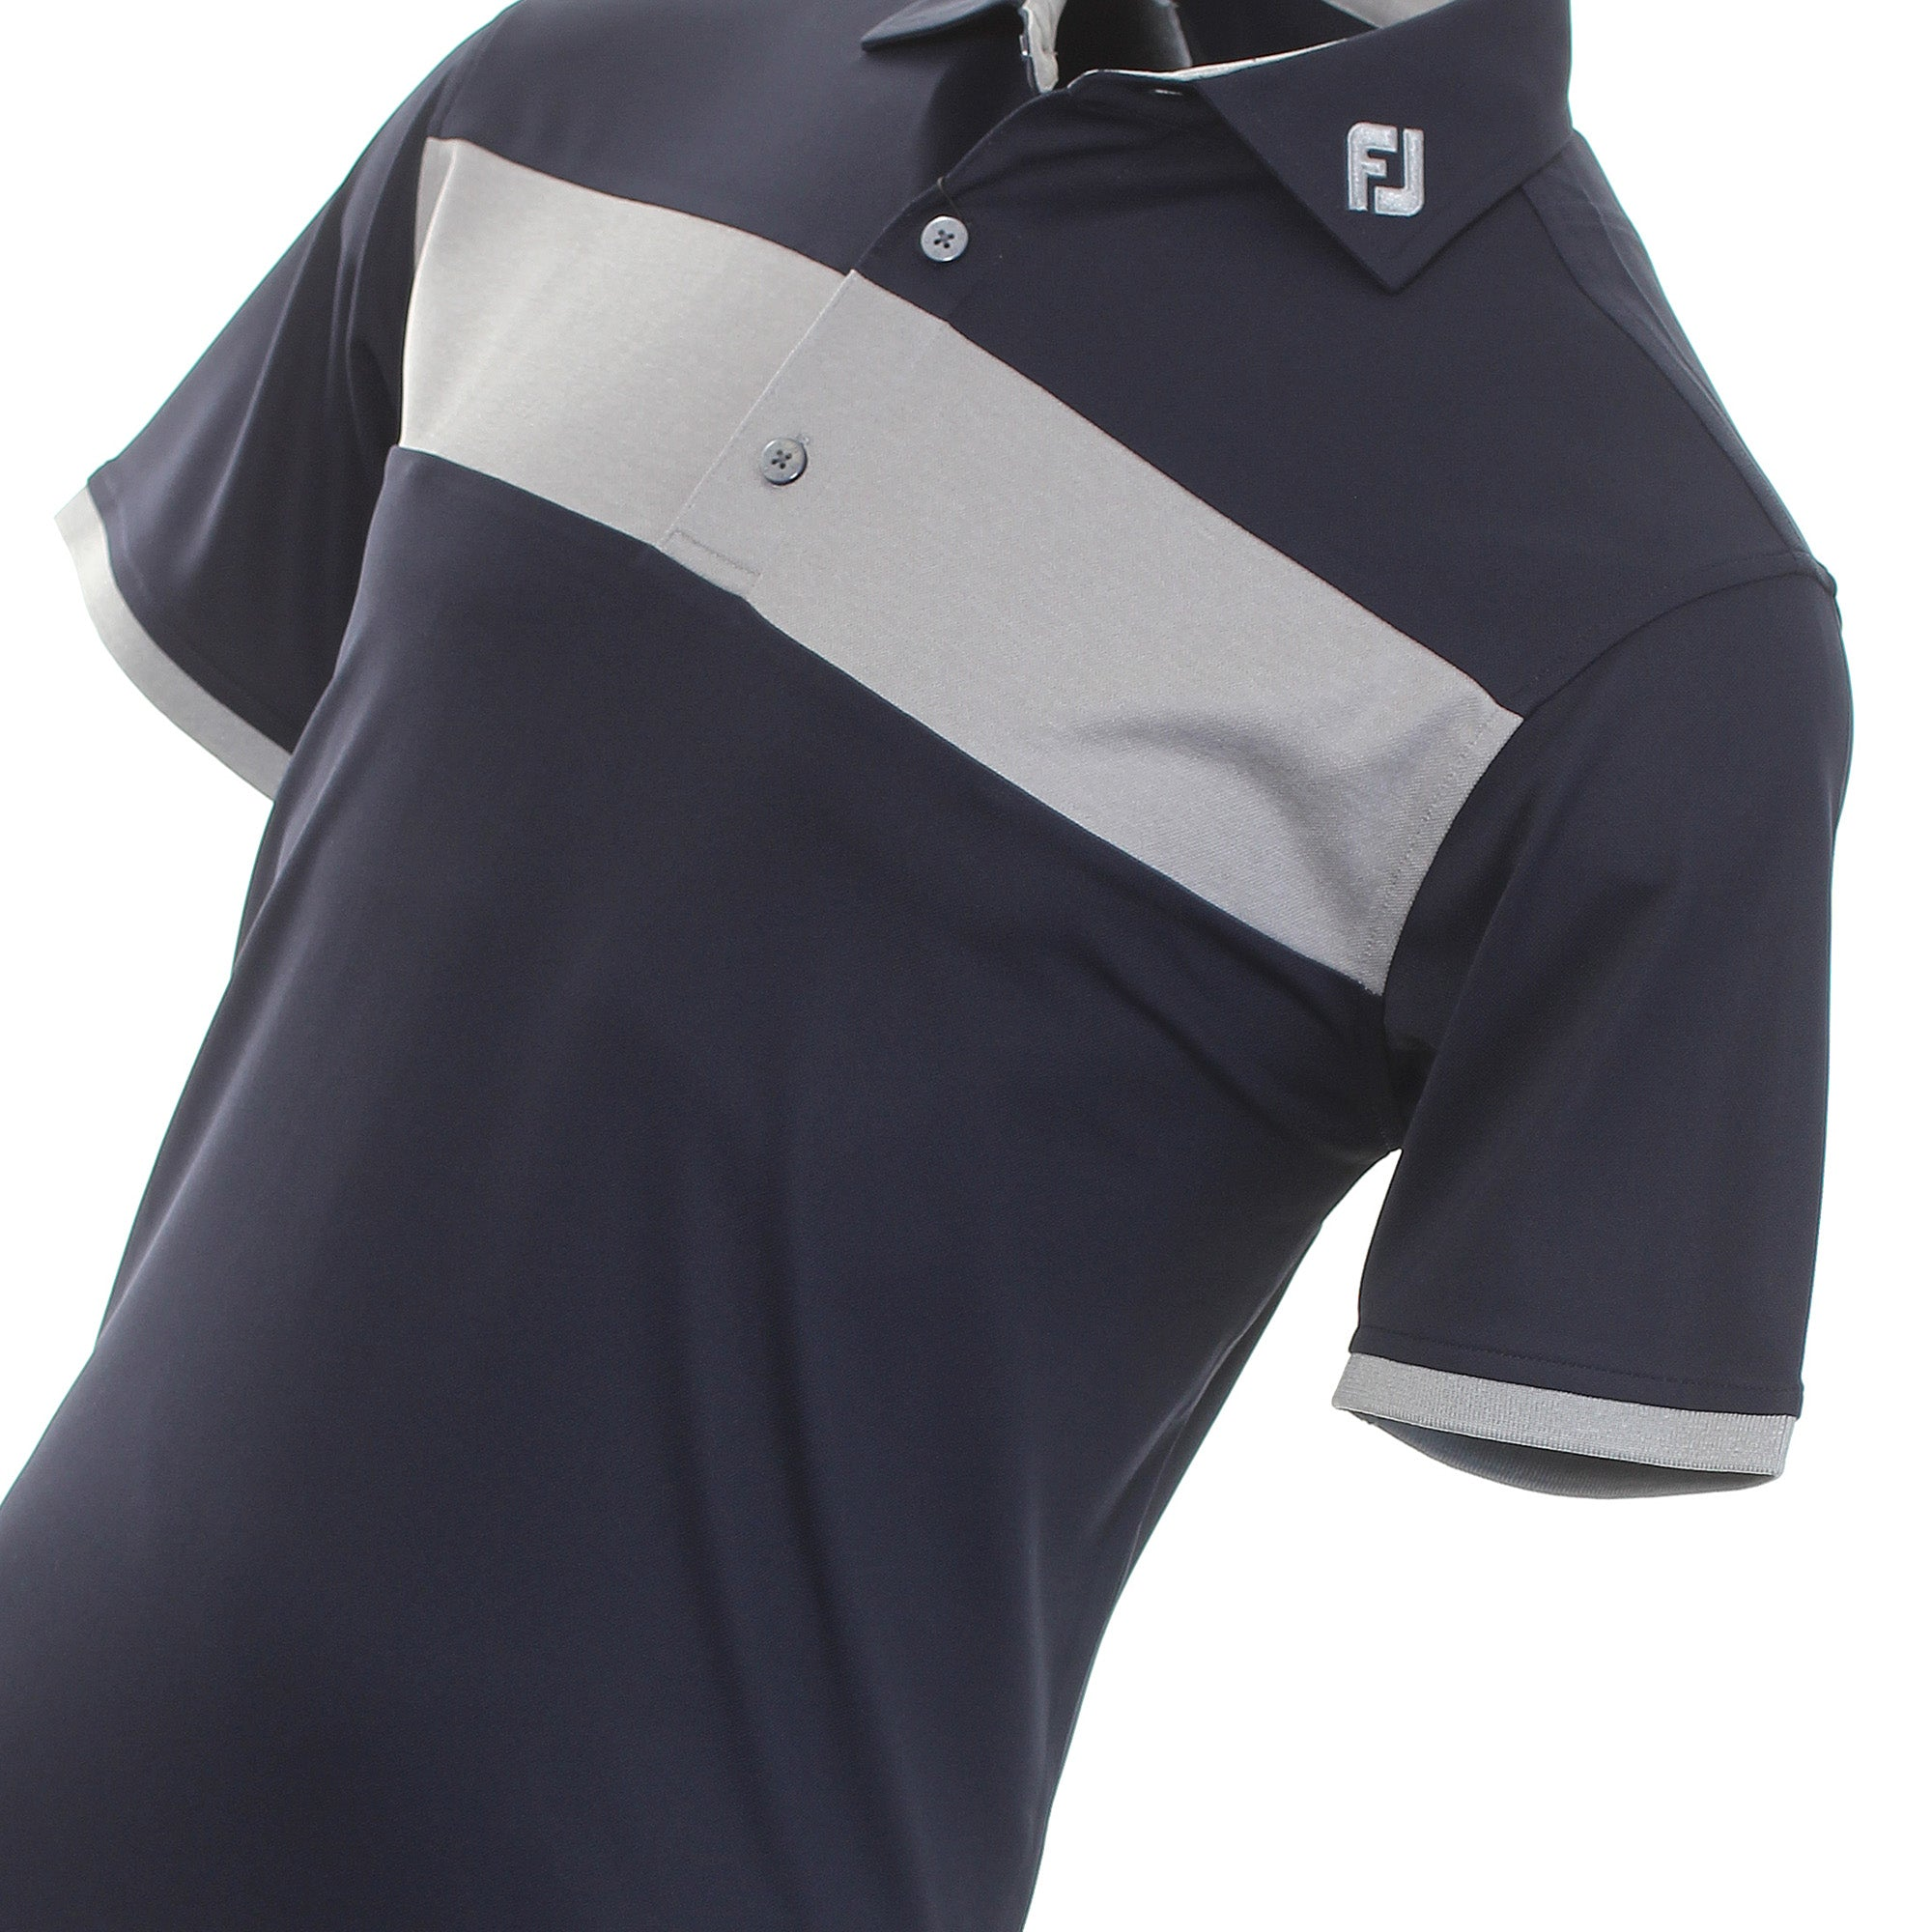 FootJoy Heather Pieced Stripe Golf Shirt